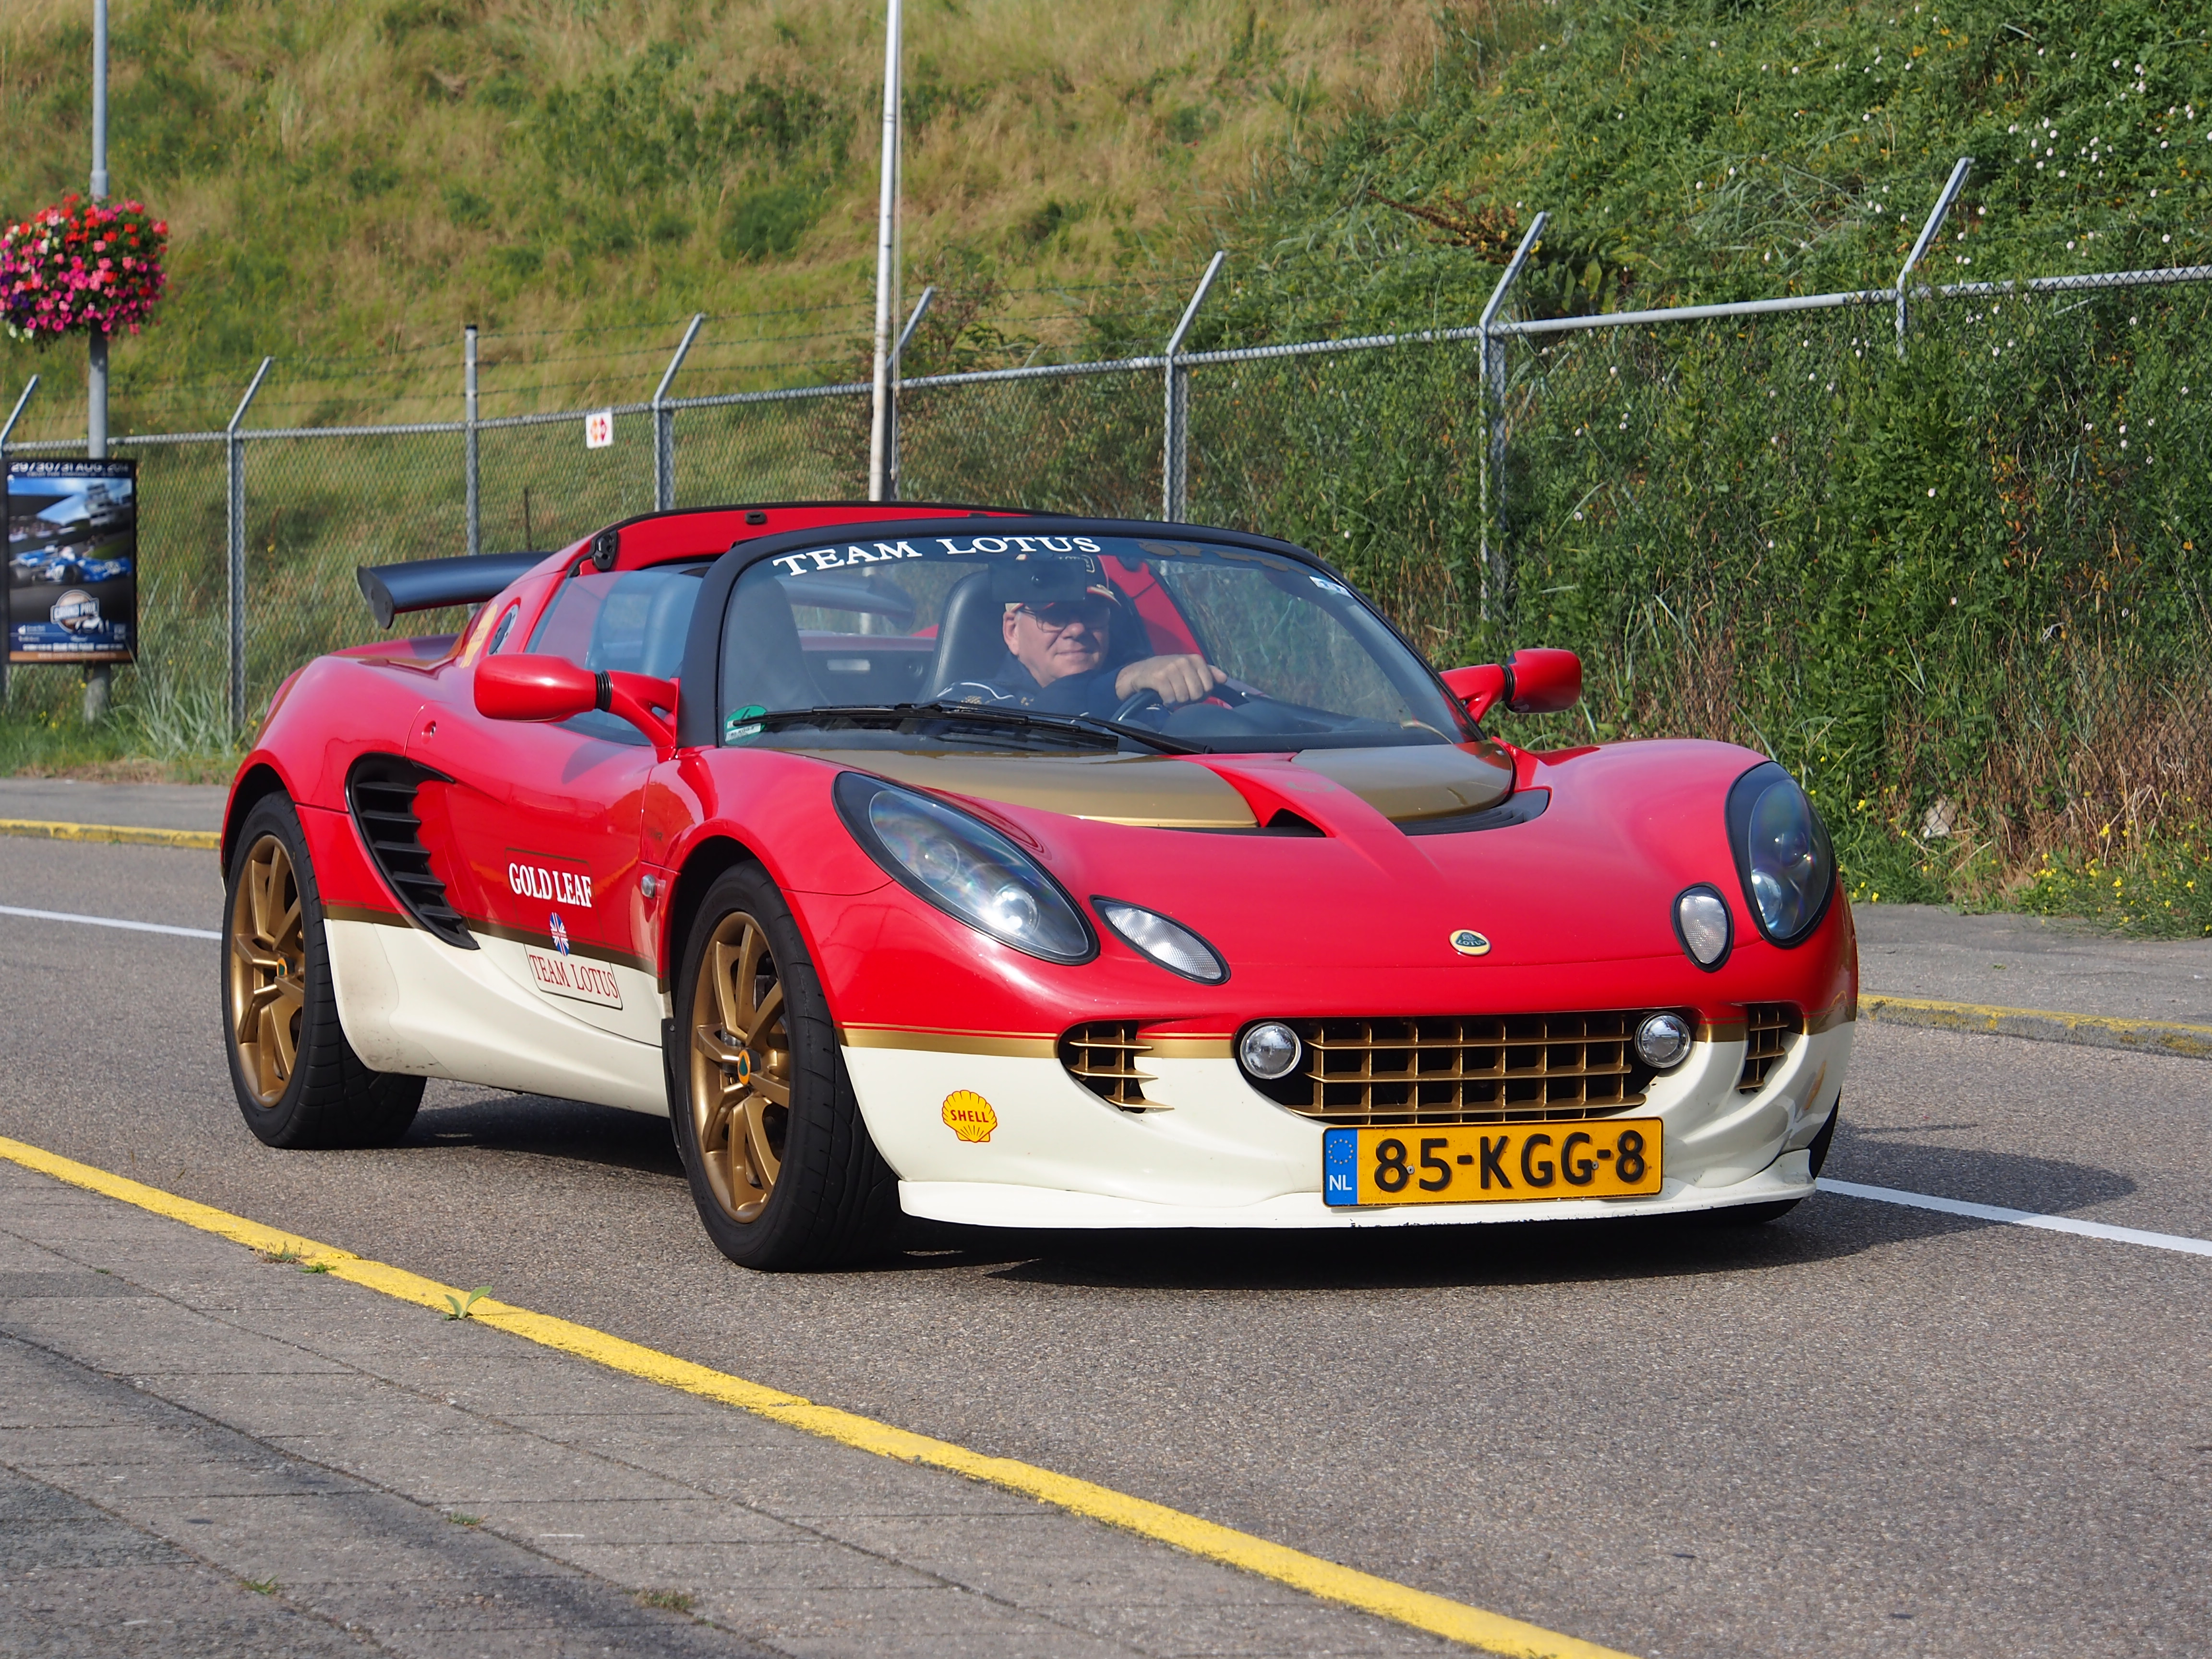 file 2004 lotus elise 111r licence 85 kgg 8 gold leaf pic1 jpg wikimedia commons. Black Bedroom Furniture Sets. Home Design Ideas